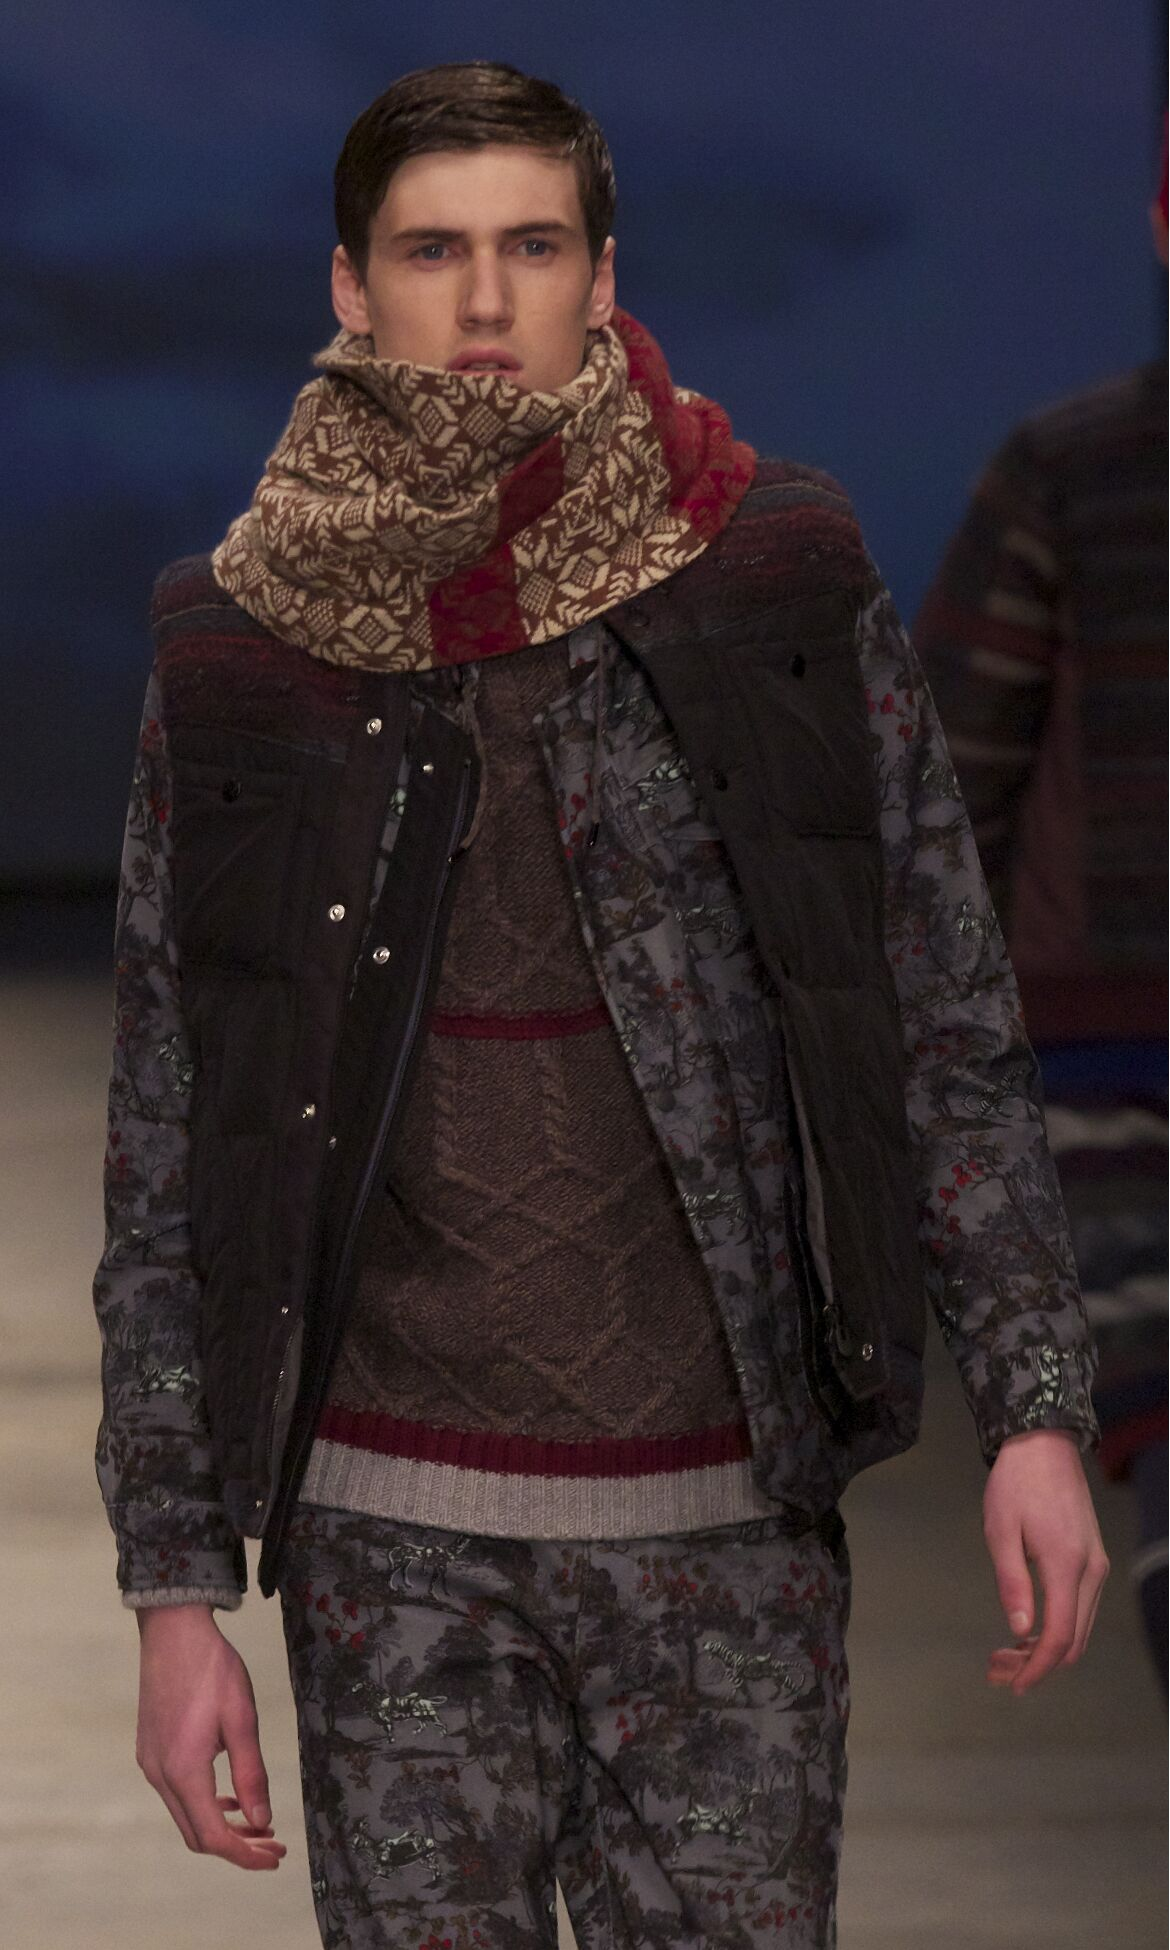 White Mountaineering Winter 2013 Catwalk